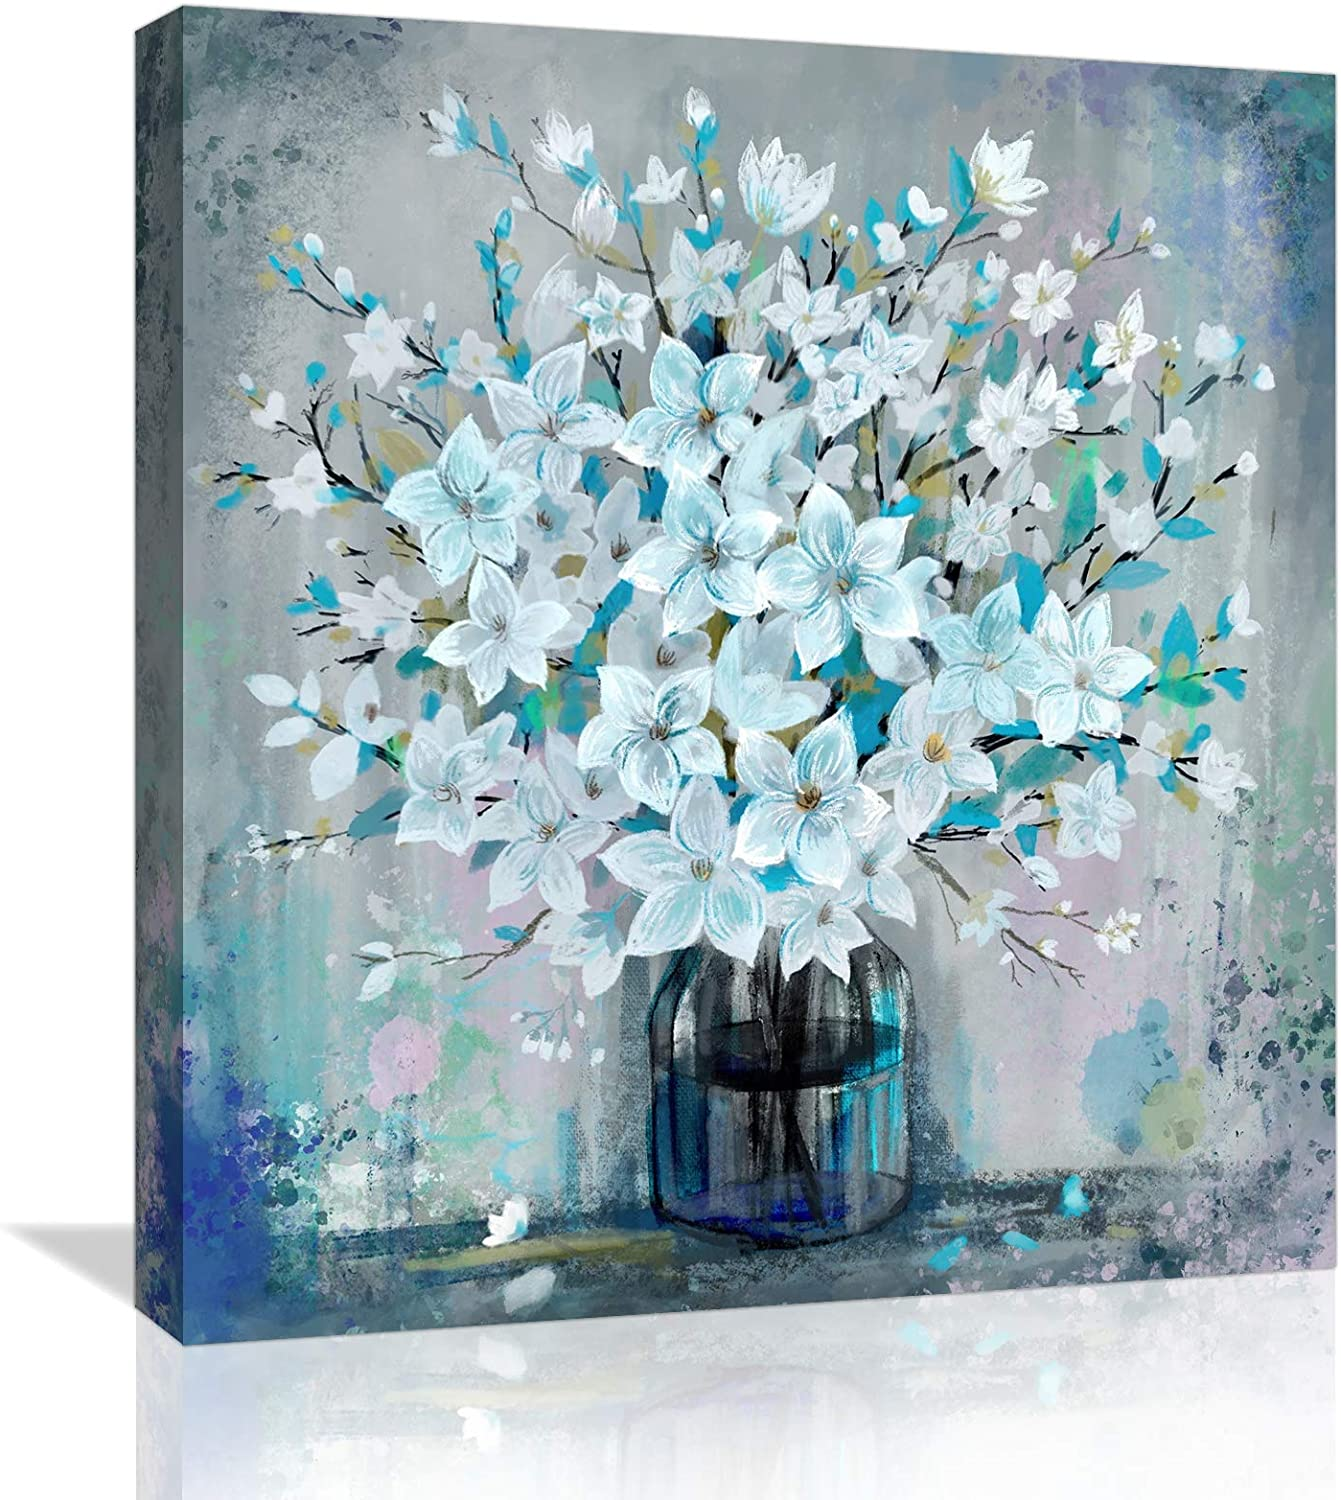 Canvas Wall-Art for Bedroom Bathroom Living-Room and Office Decor, Framed Paintings Modern Farmhouse Wall Art, Blue Flower Wall Decor Picture Artwork for Home Art Prints with Wood Frame Size 14